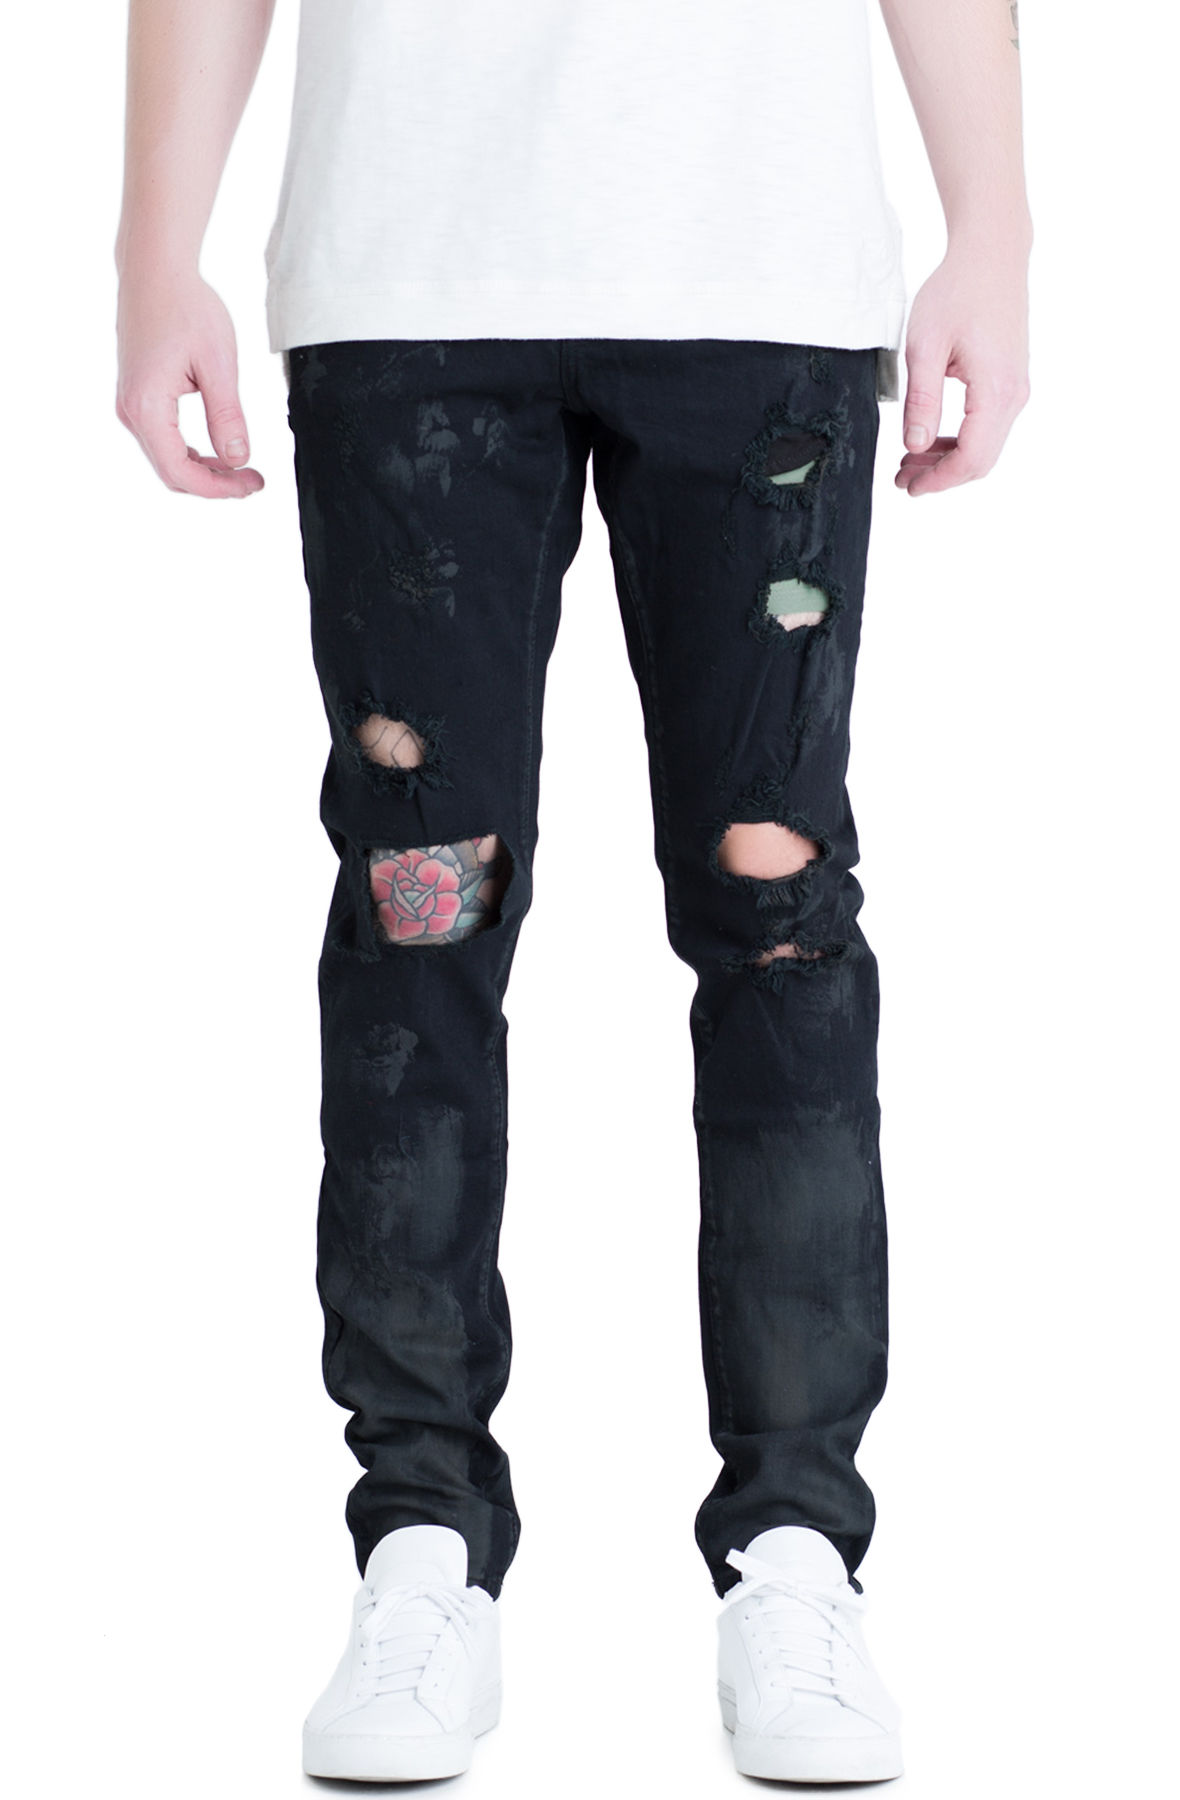 Image of The Trenton Distressed Denim Jeans in Black